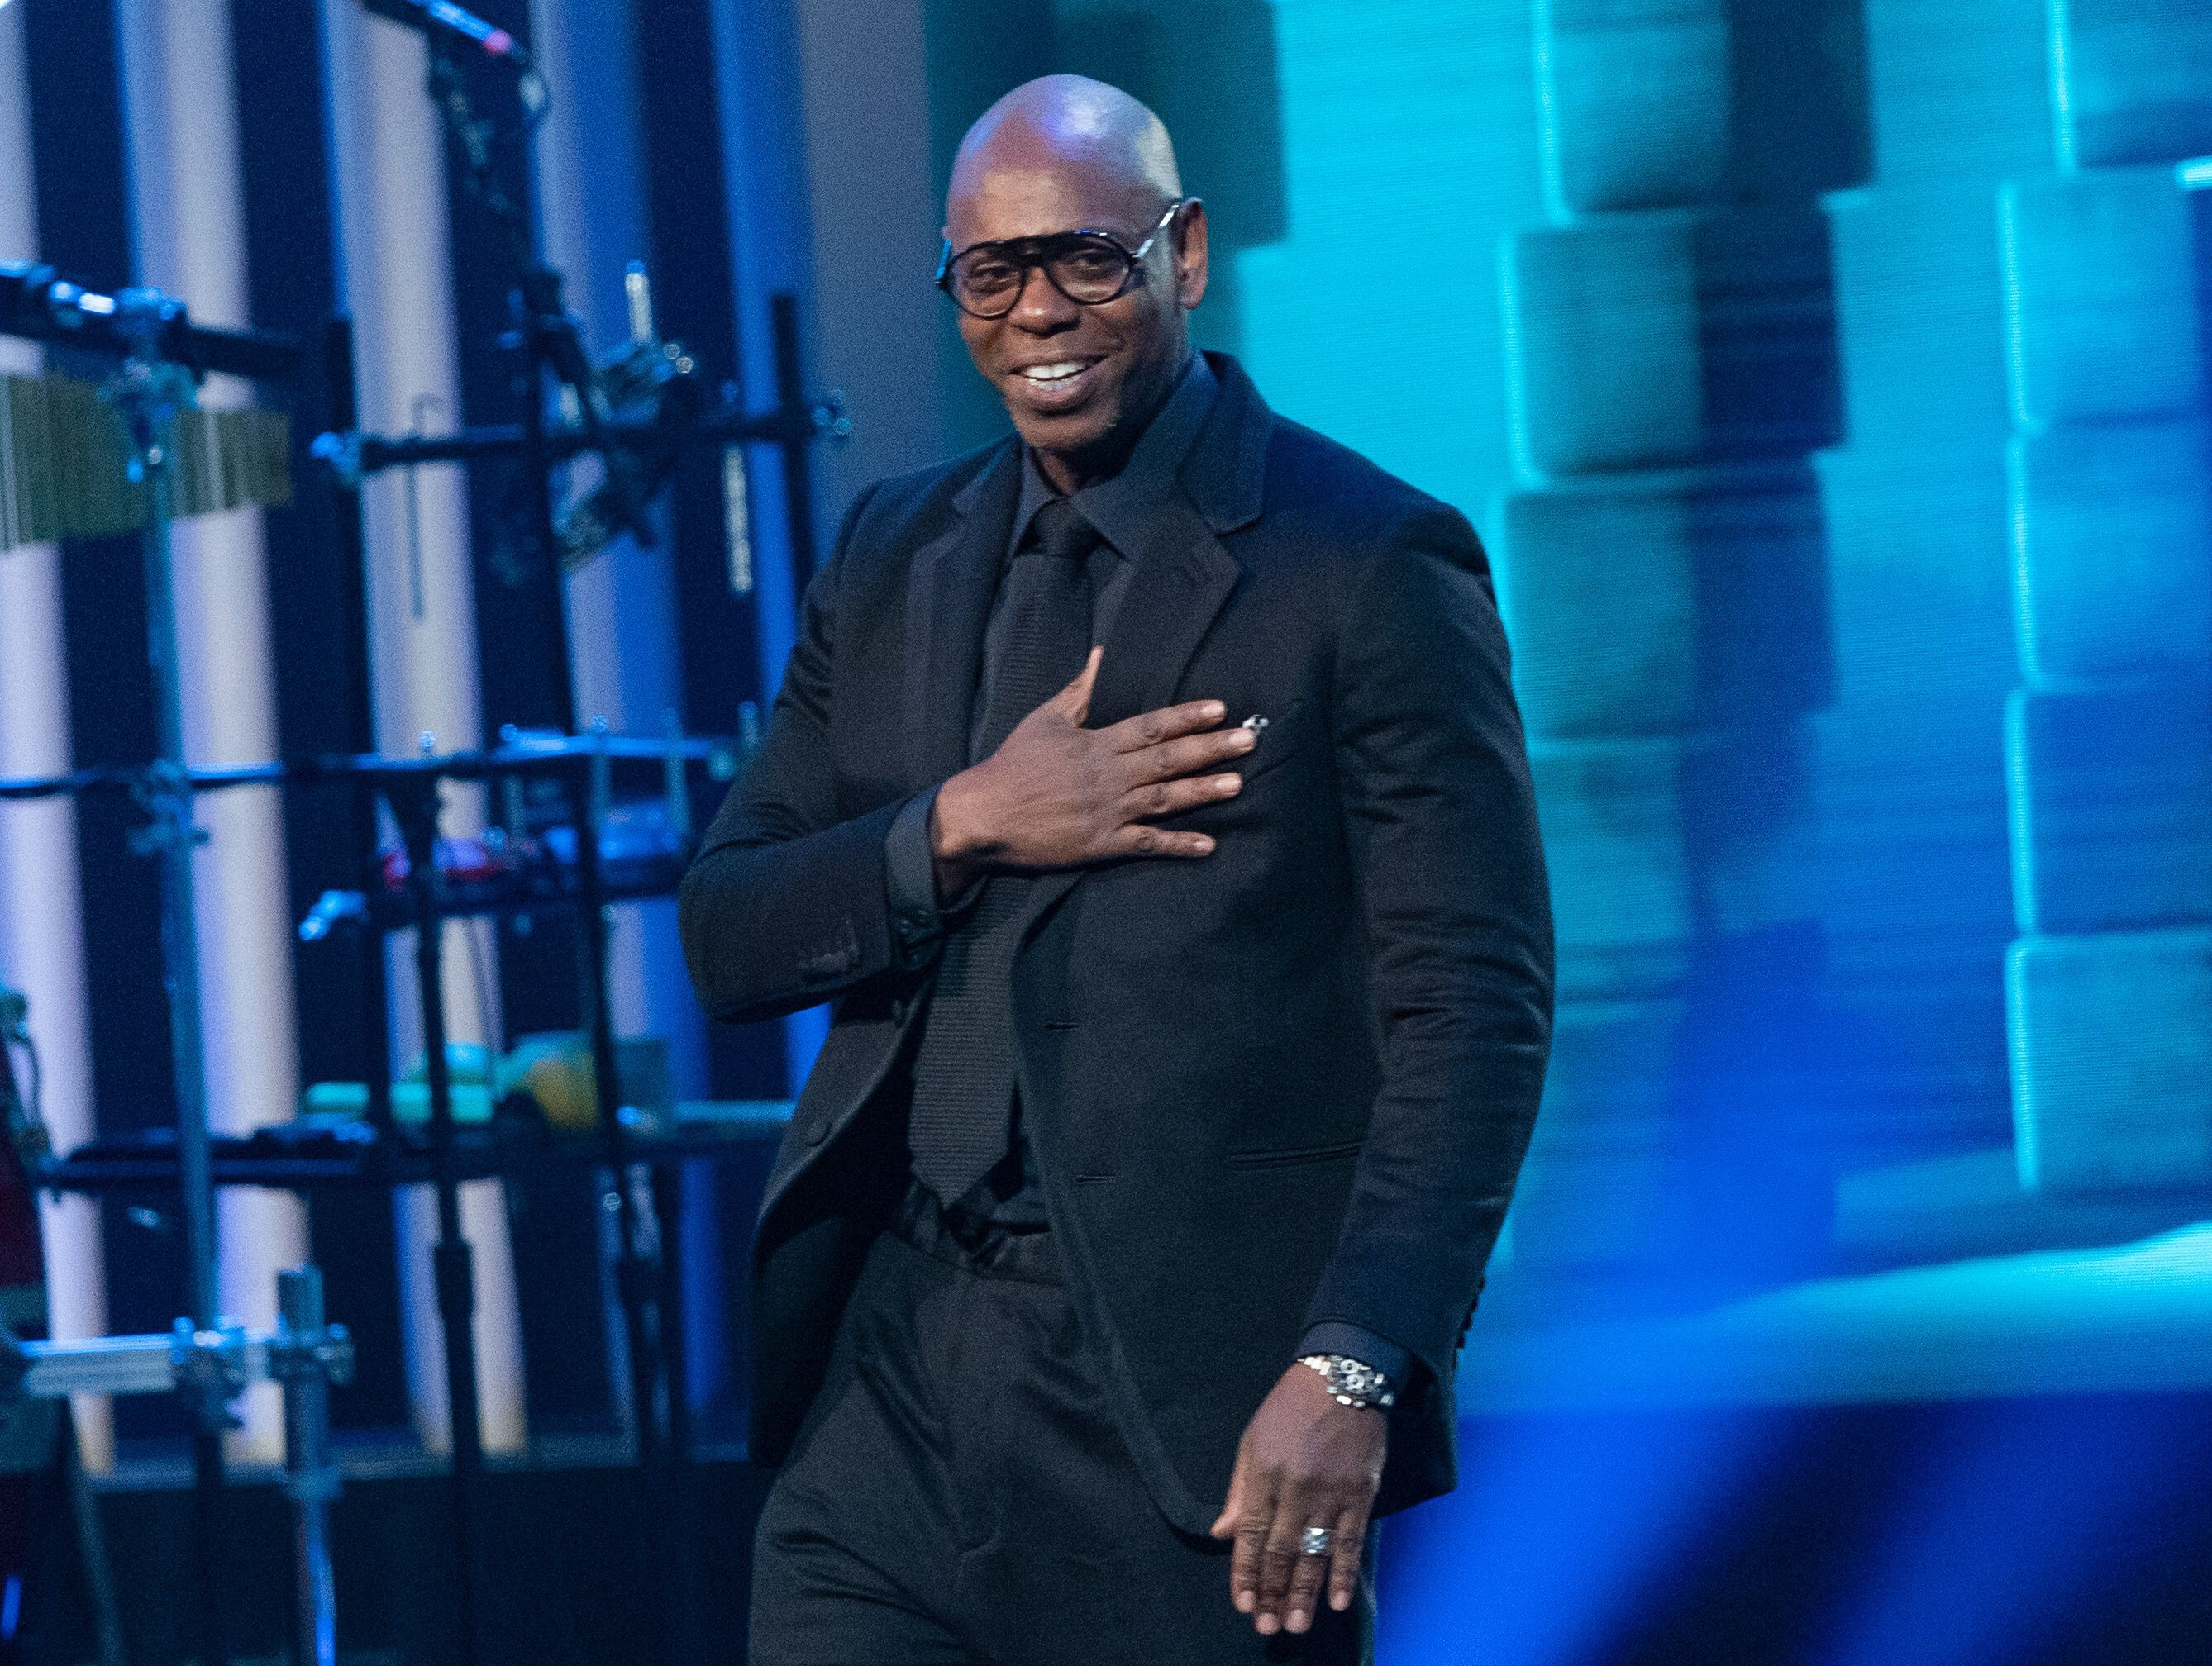 Dave Chappelle debuts trailer for new comedy special